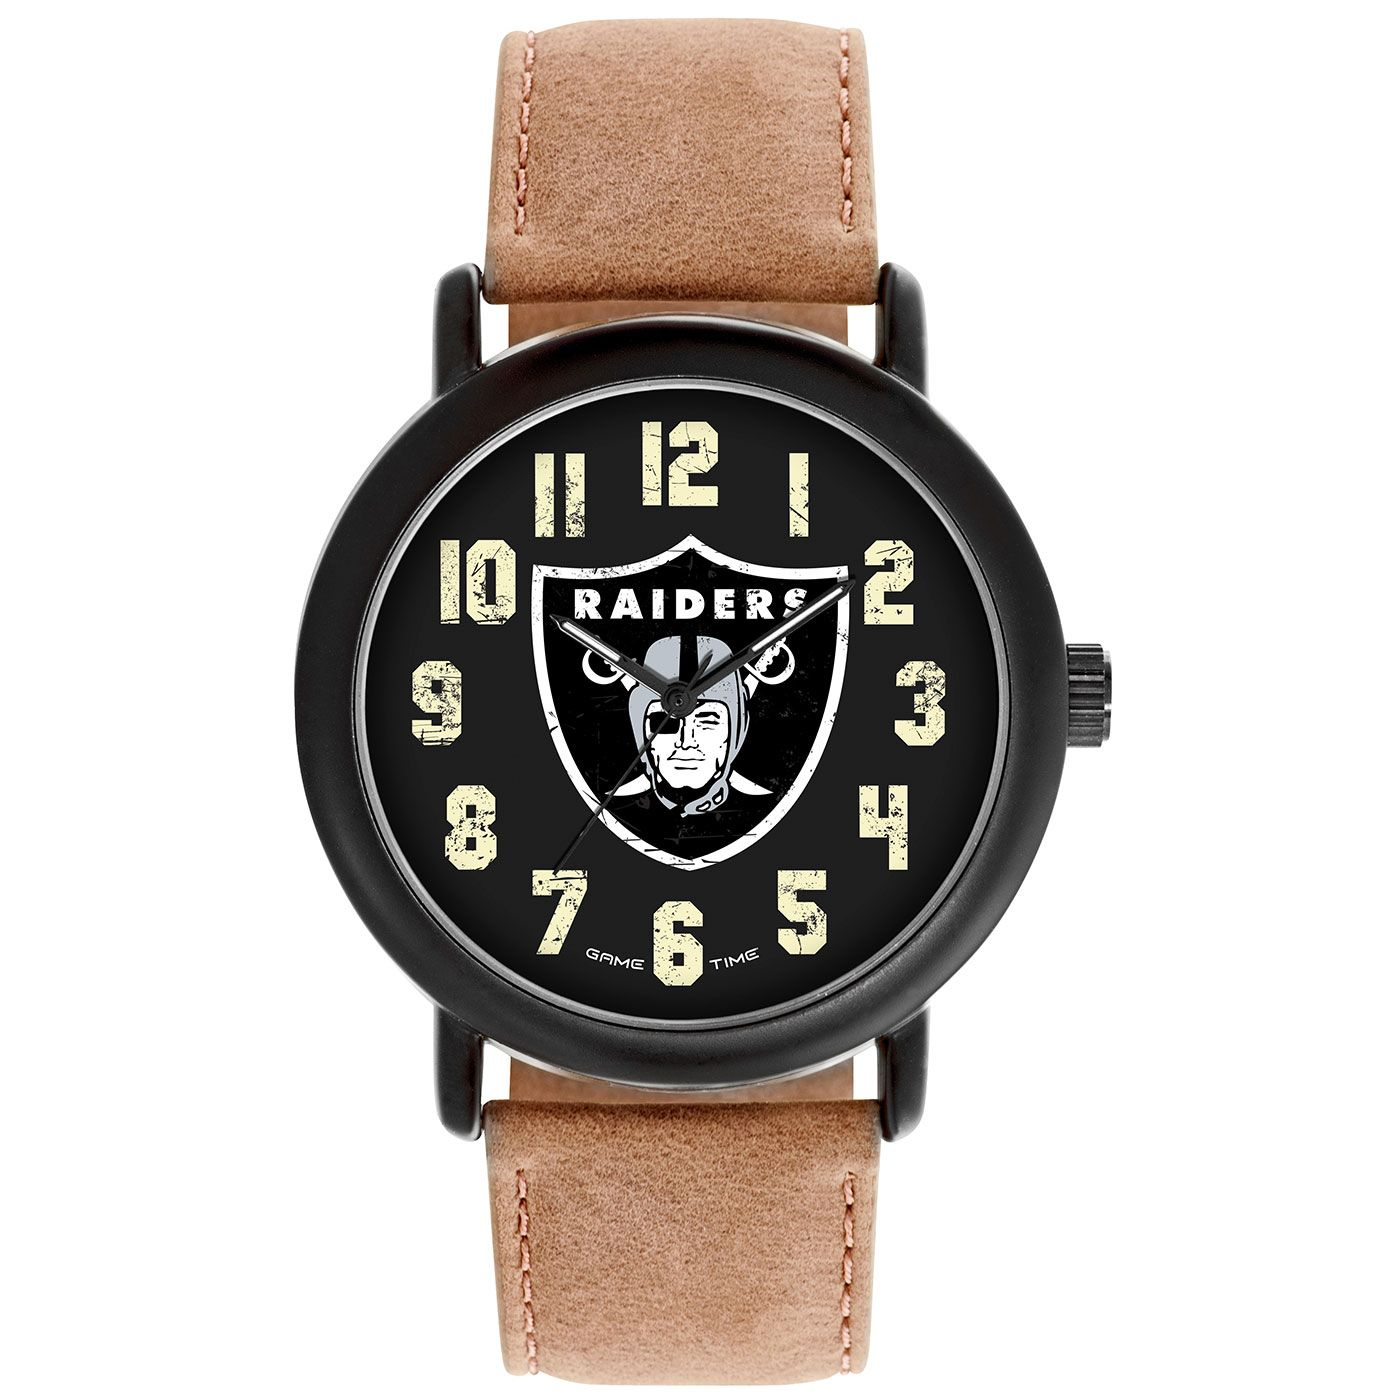 new product 4ac06 cfabd Raiders Throwback Leather Watch